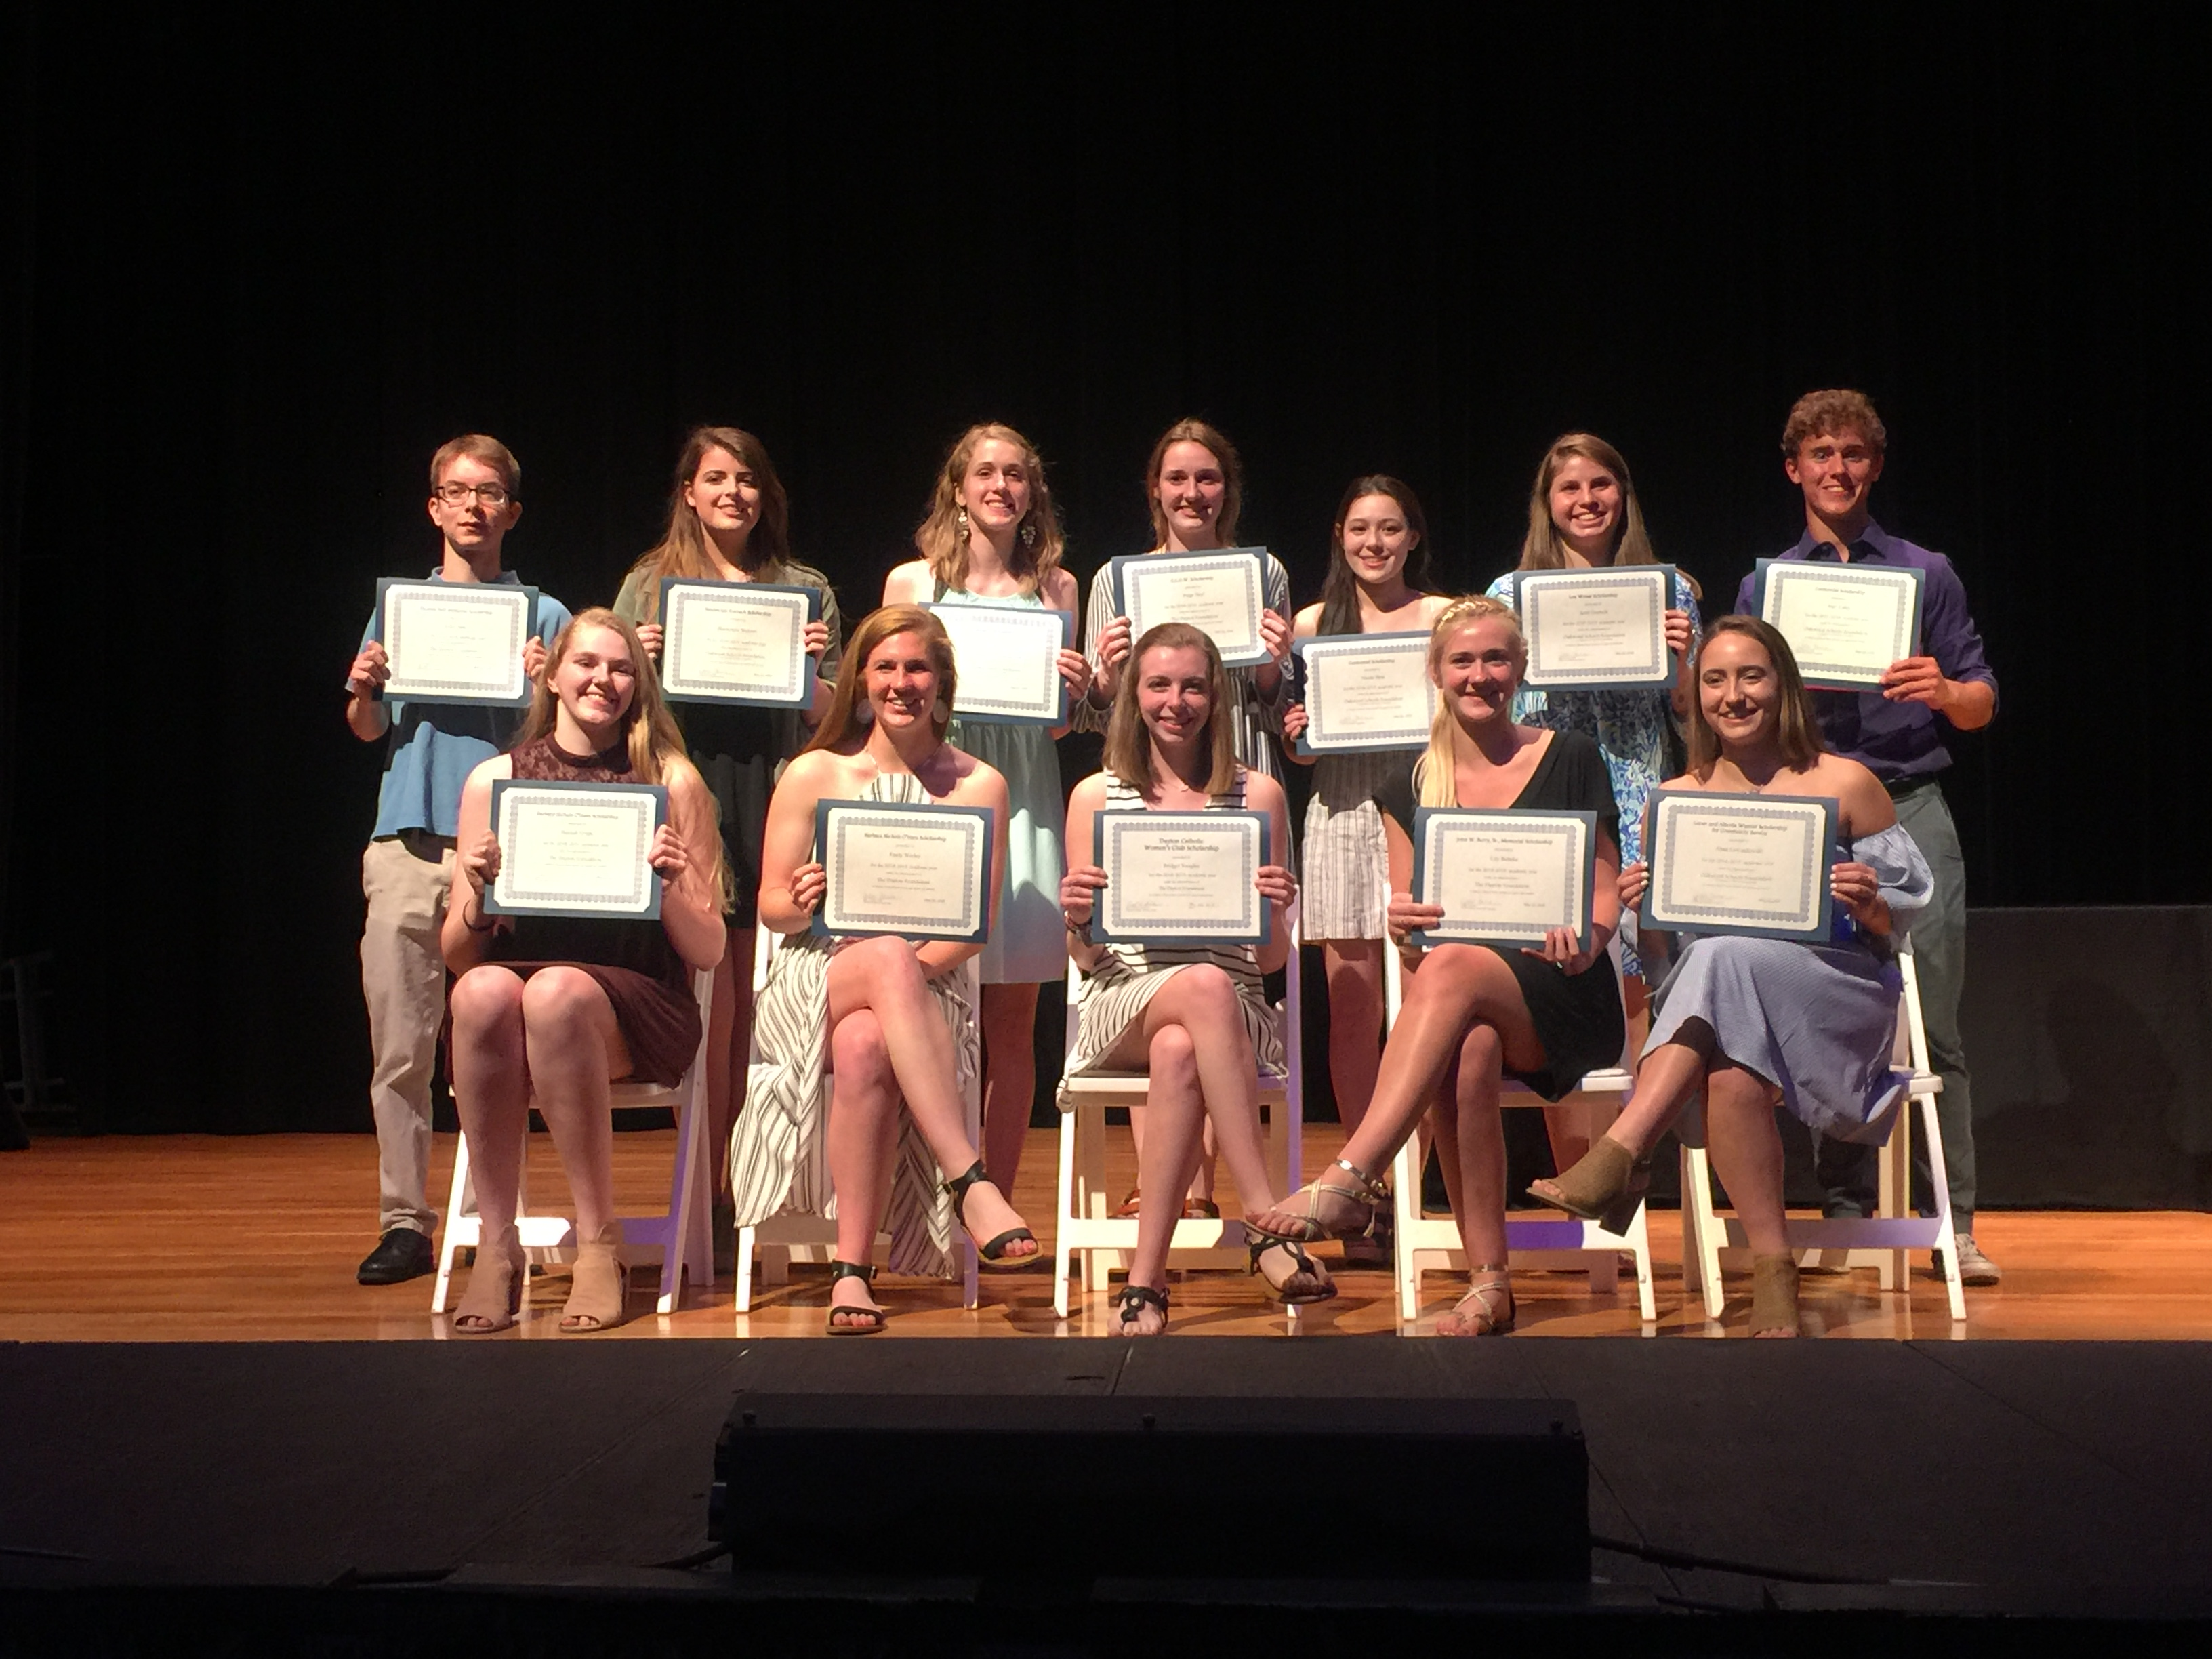 Some of the winners of the 2018 OSF scholarships taken at Senior Recognition